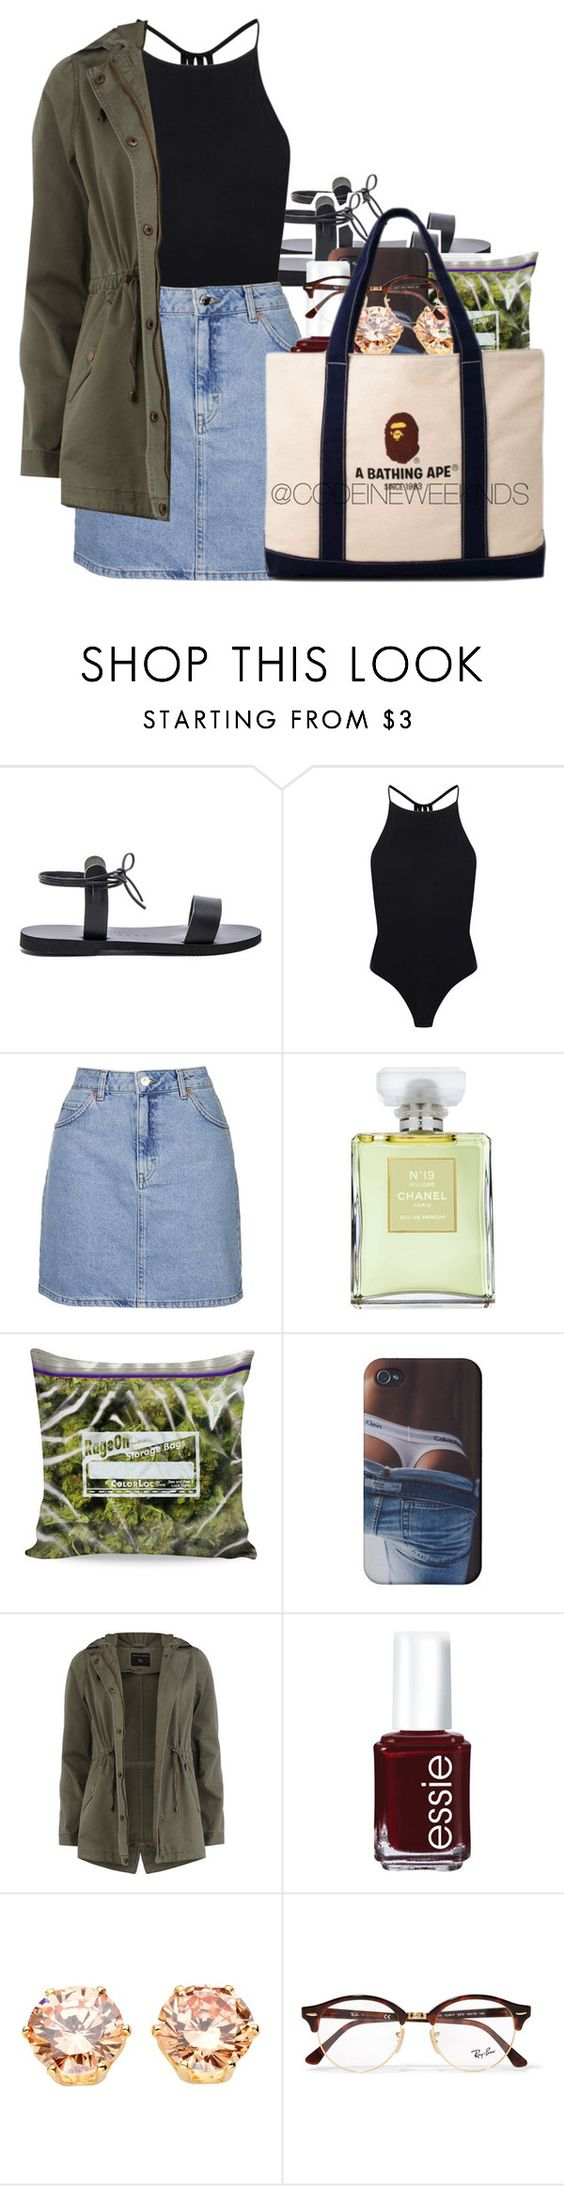 """4/20/16 - Happy 4/20"" by codeineweeknds ❤ liked on Polyvore featuring Isapera, Topshop, Chanel, Dorothy Perkins, Essie, Ray-Ban and A BATHING APE"